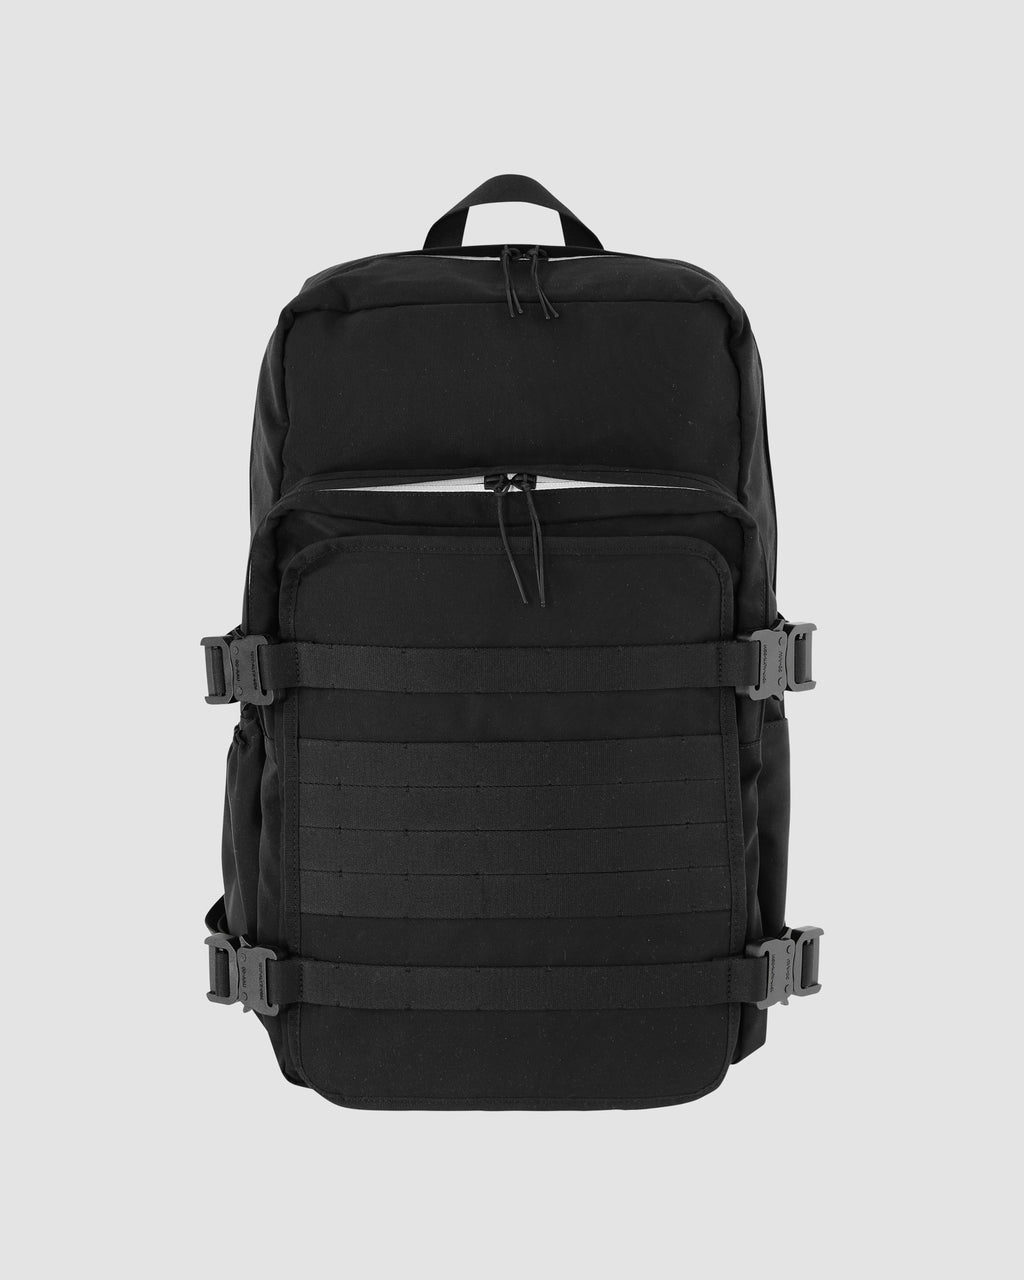 NORDSTROM CAMPING BACKPACK